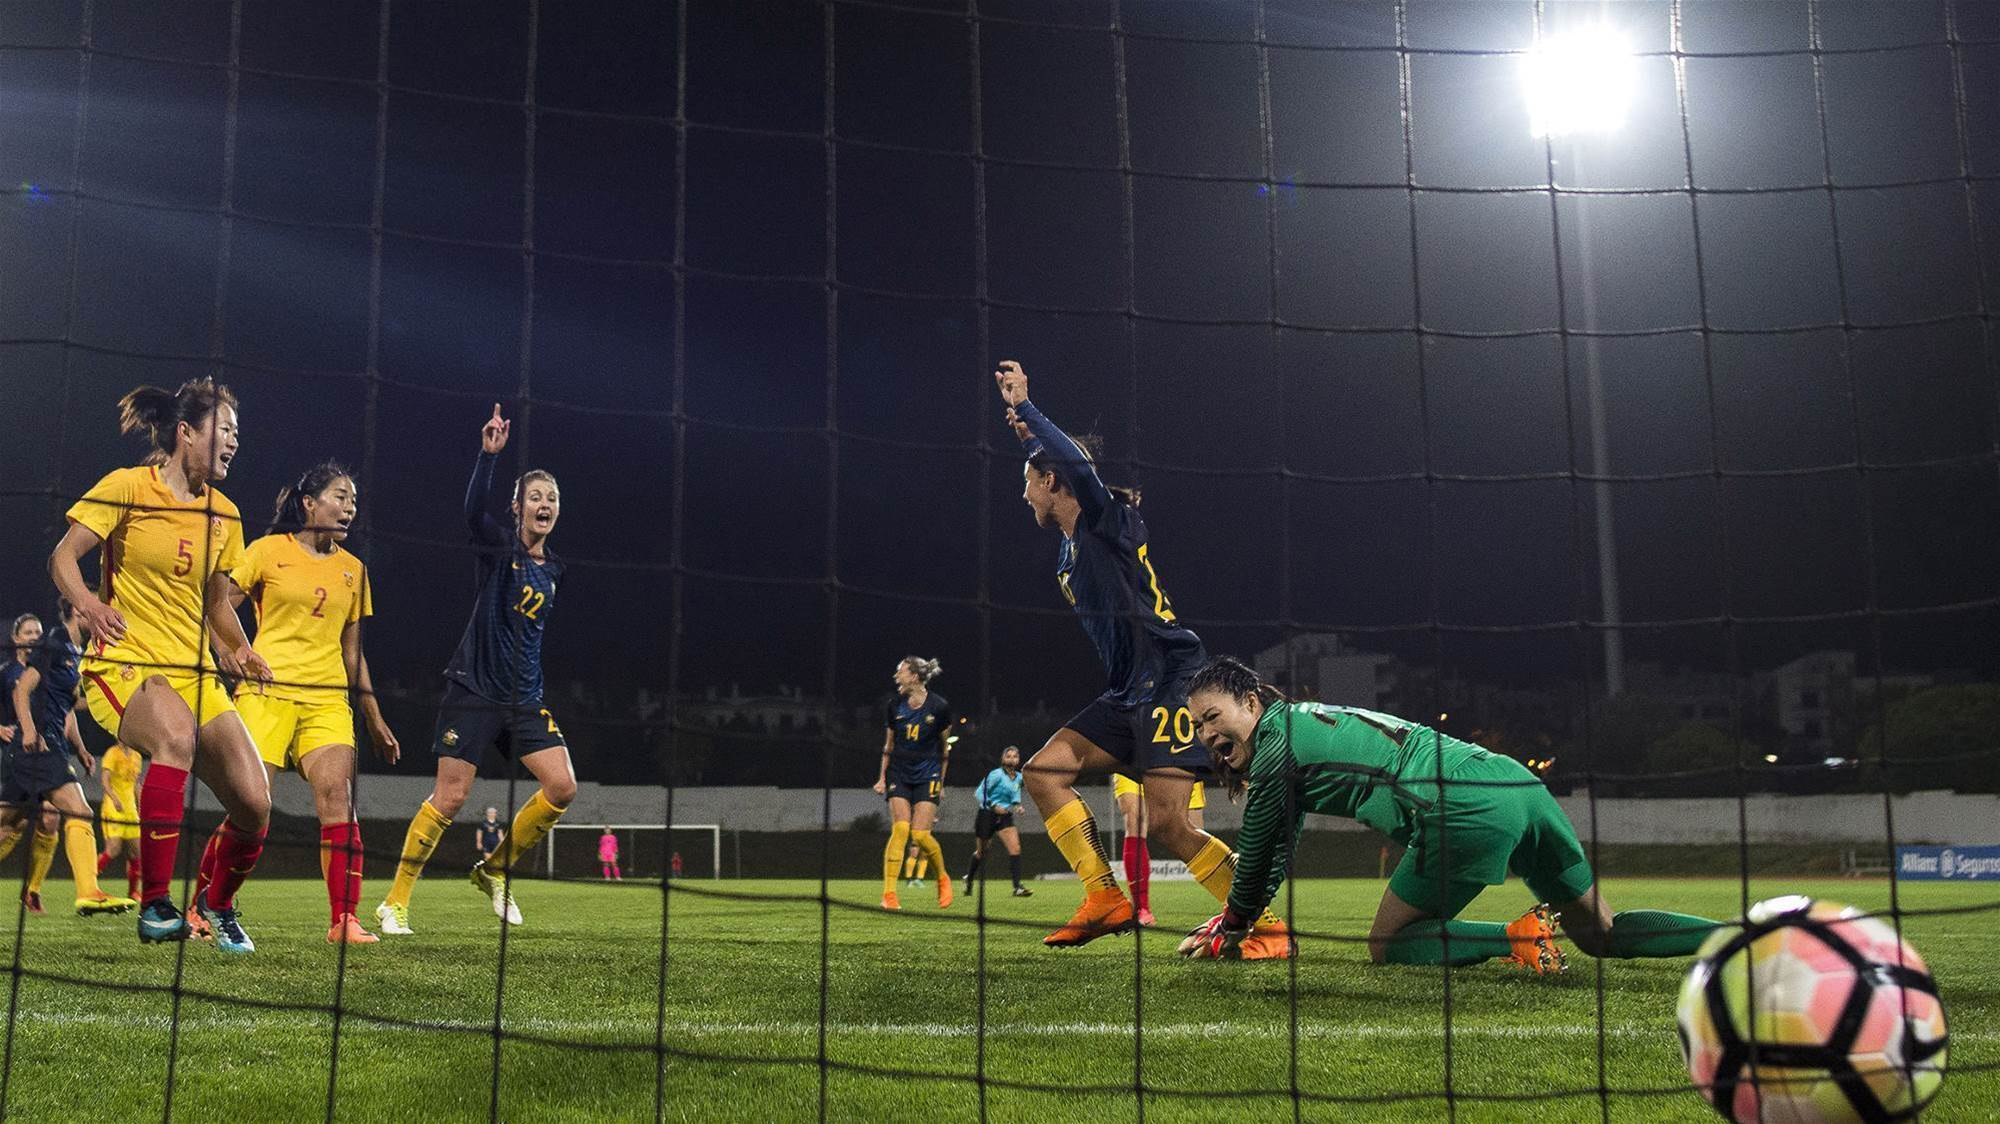 A new FIFA women's competition?